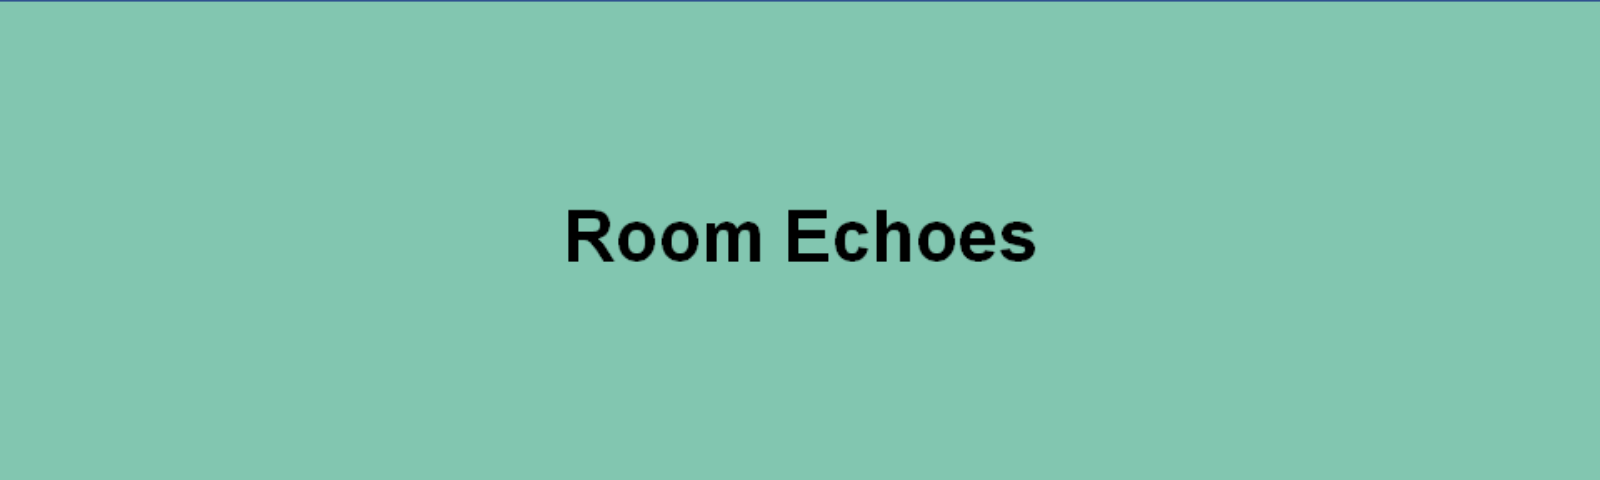 Reducing Room Echoes For Home Podcast Recording By John Siracusa Listendeck Medium